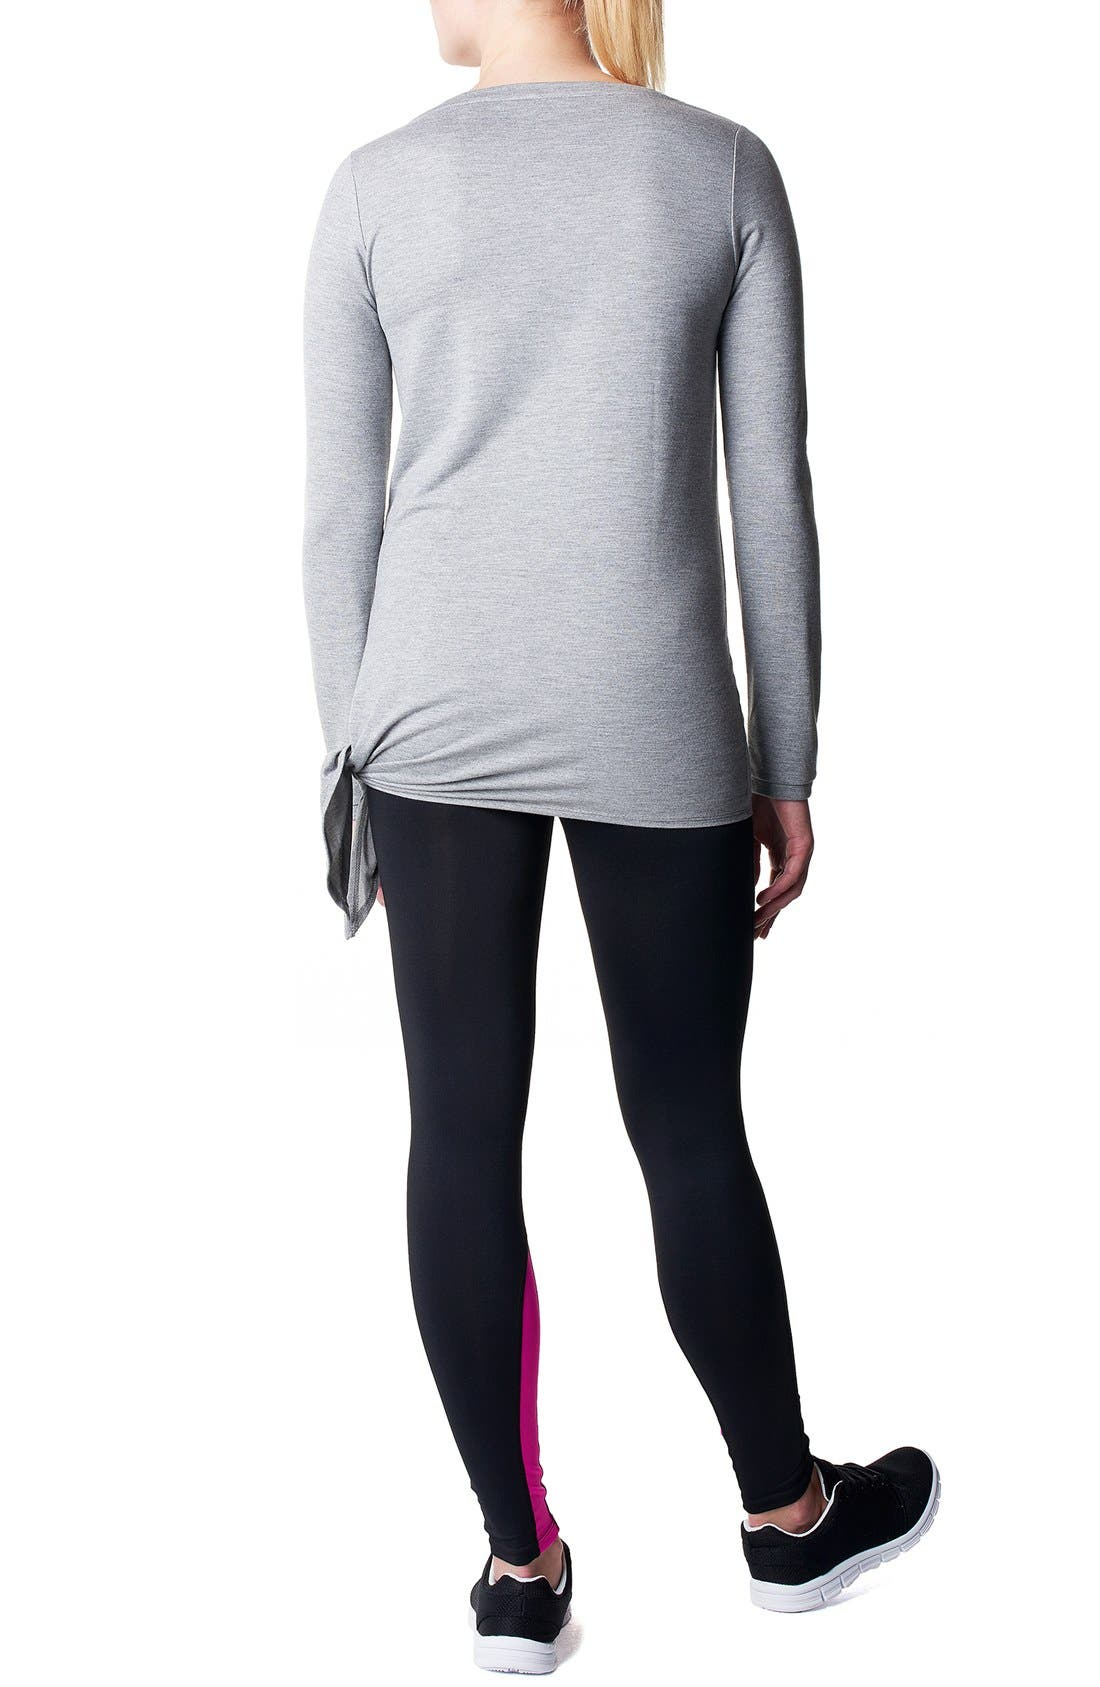 'Heather' Athletic Long Sleeve Maternity Top,                             Alternate thumbnail 2, color,                             GREY MELANGE